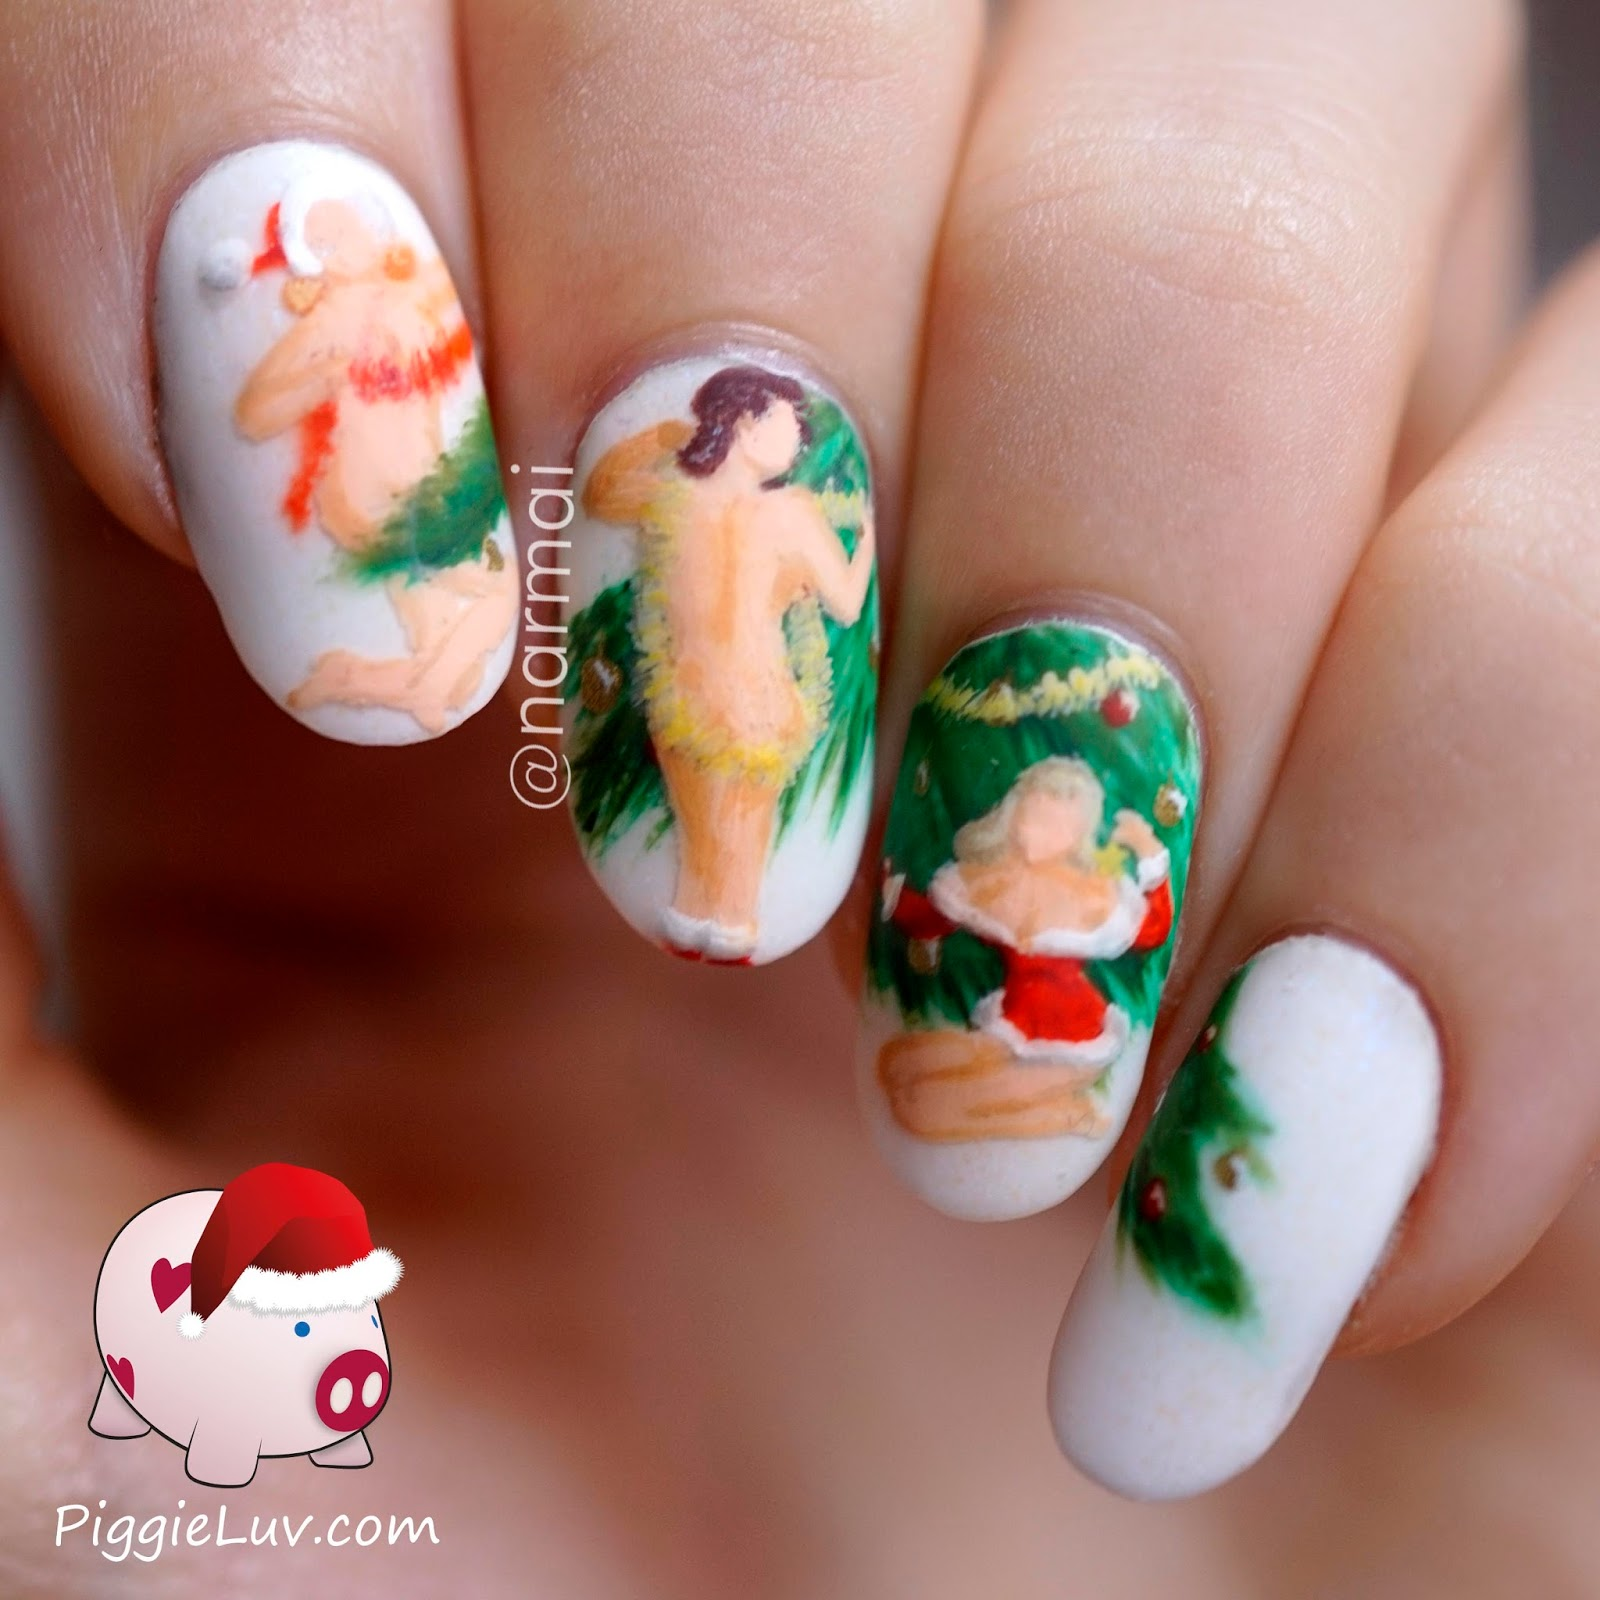 PiggieLuv: Burlesque Christmas ladies nail art, HPB December linkup